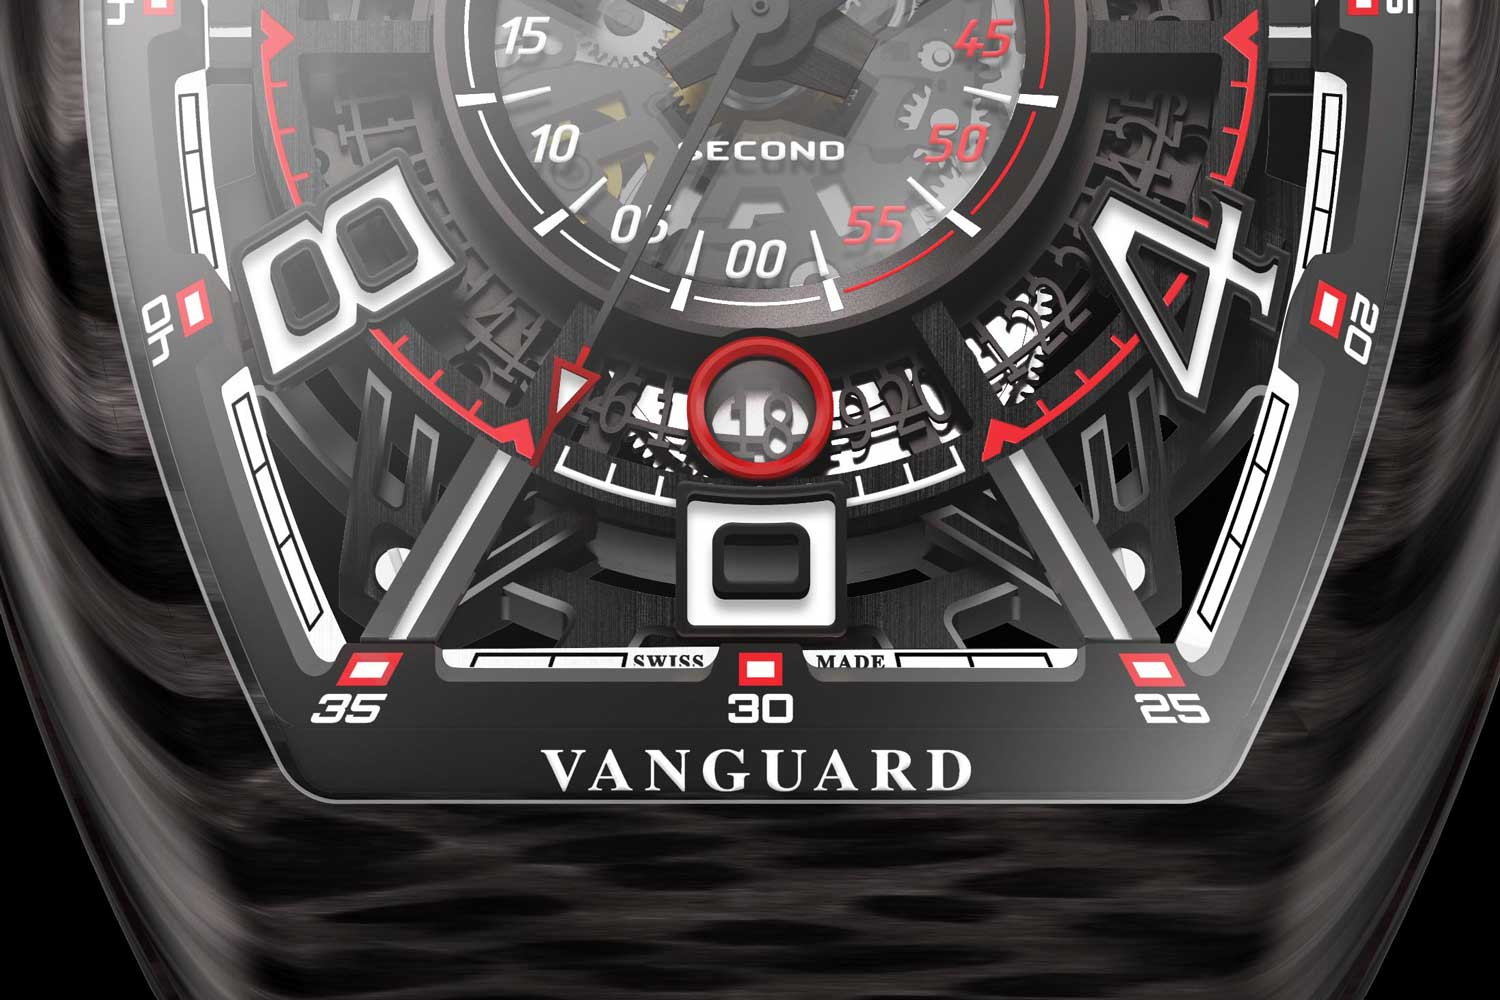 Franck Muller Vanguard Racing Skeleton